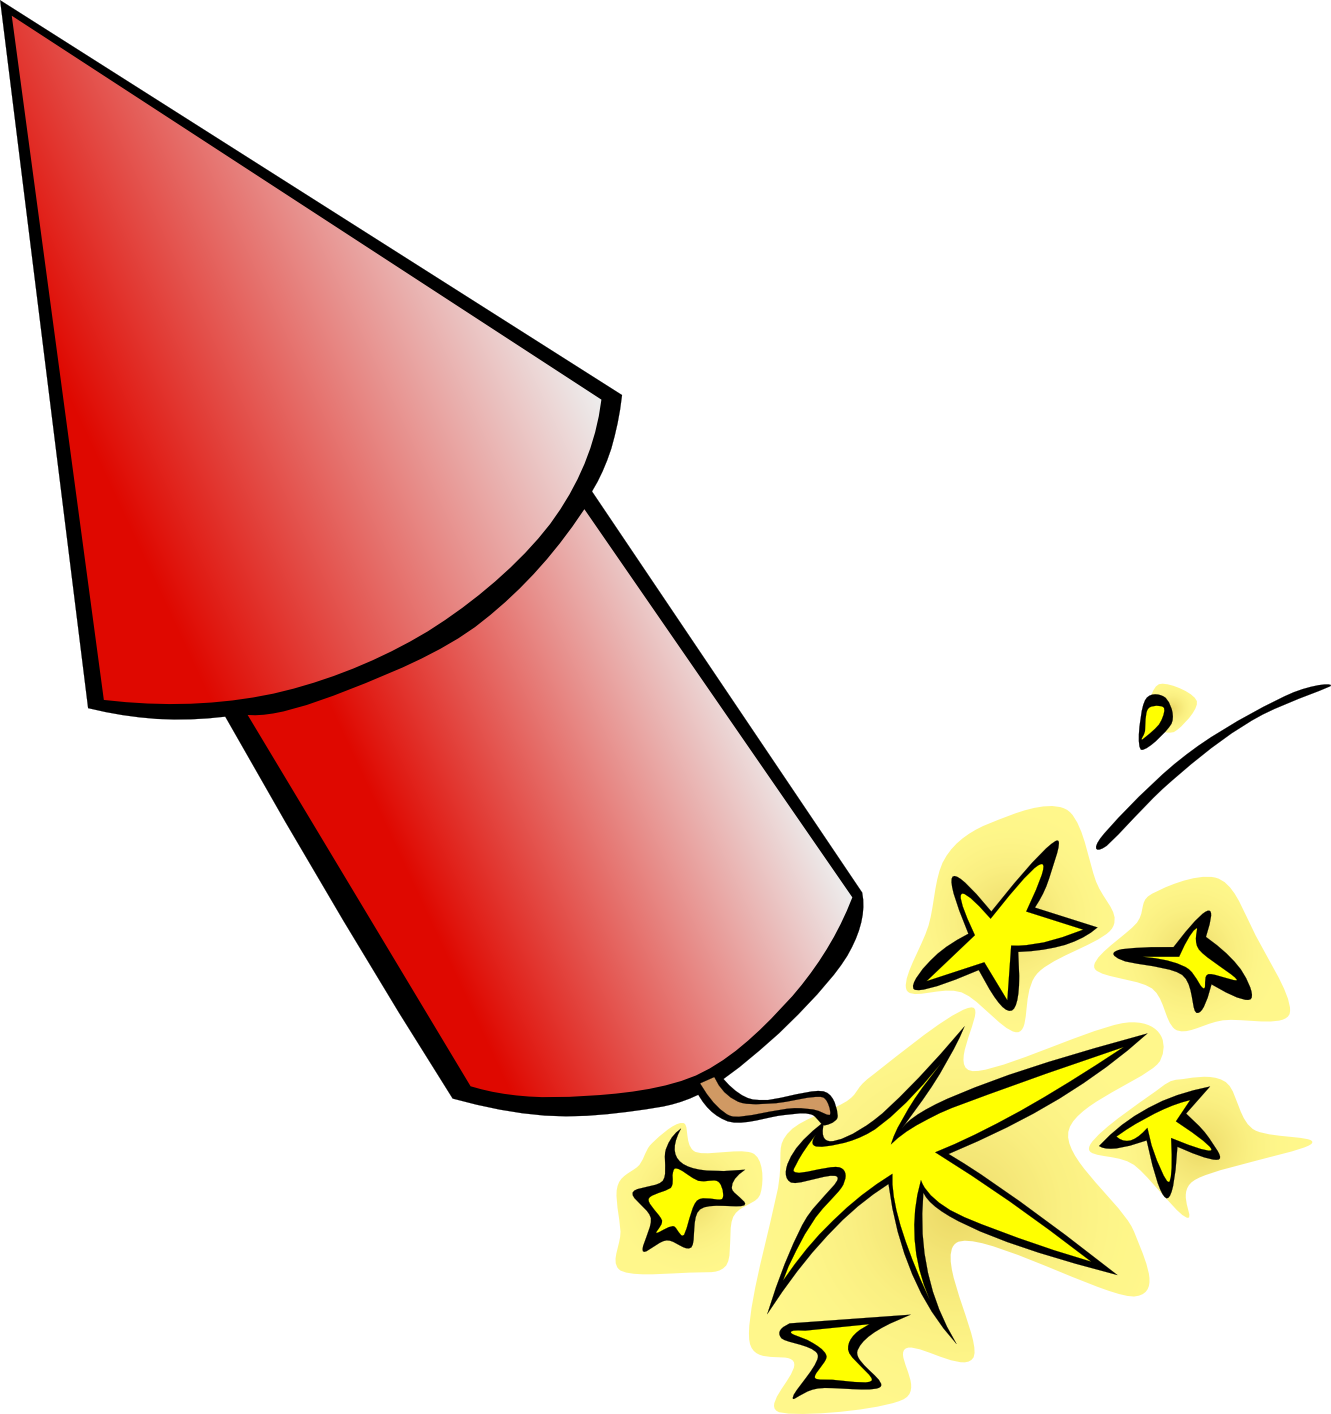 Firecracker clipart simple. Free cartoon pictures of